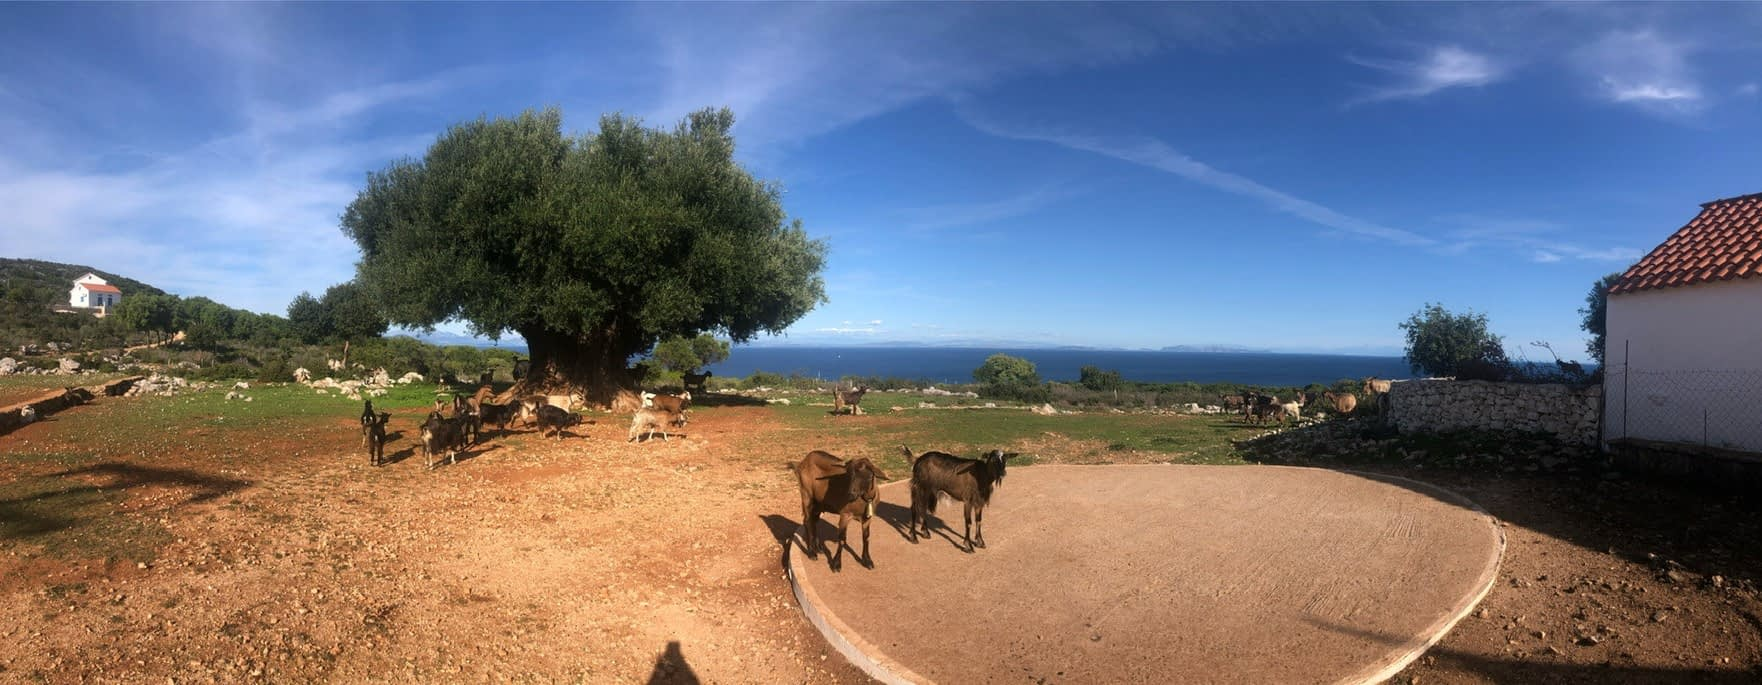 Landscape view of Ag Sophia in Ithaca Greece